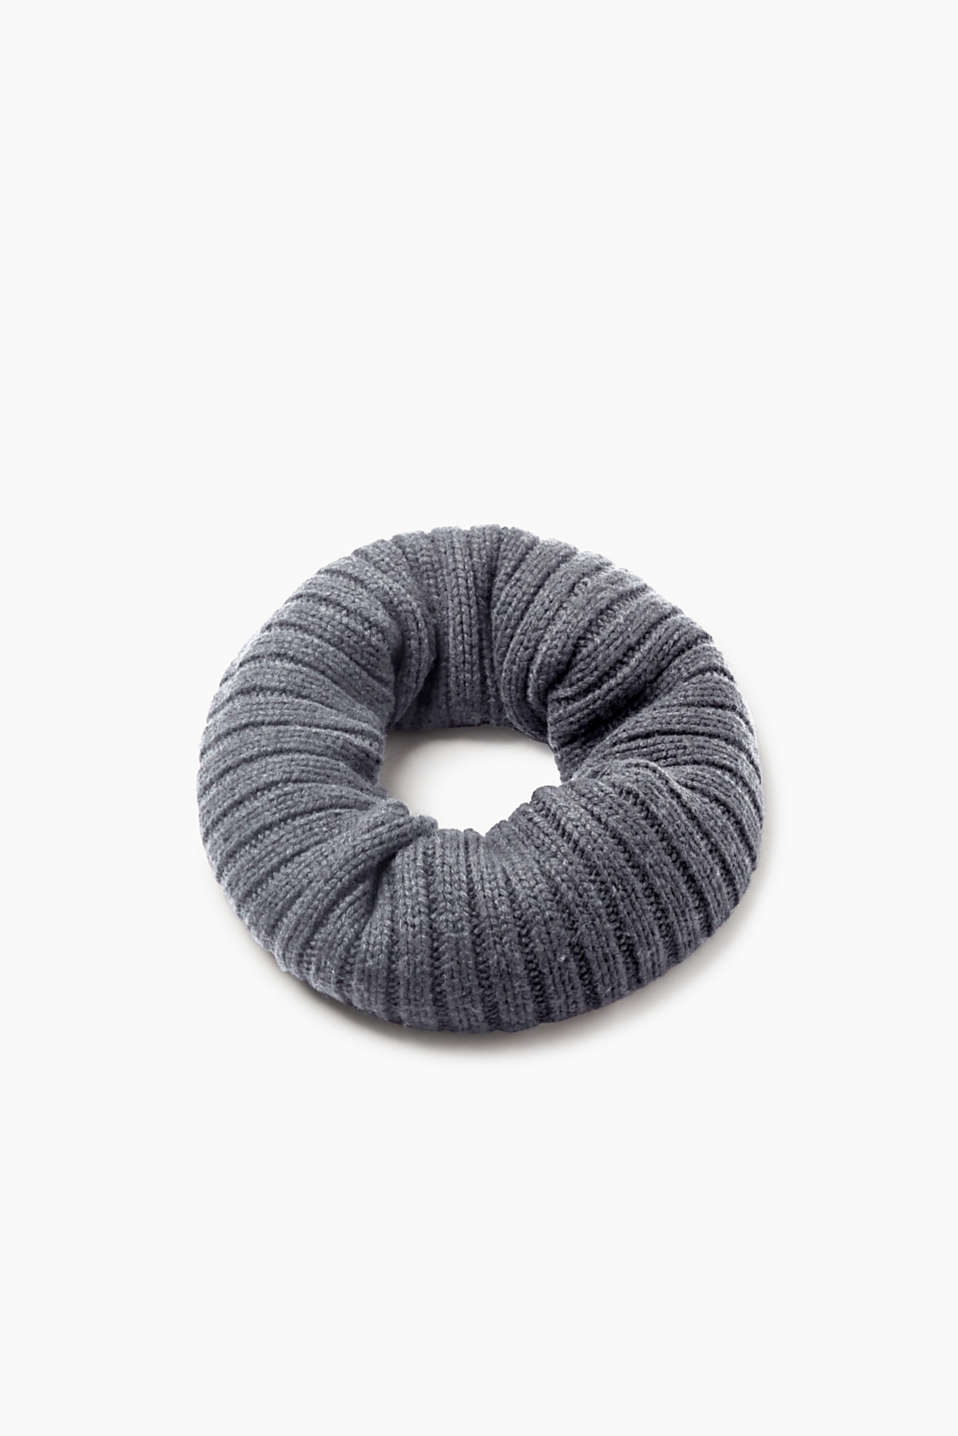 An accessory for your urban look: snood in high-quality rib knit yarn with wool